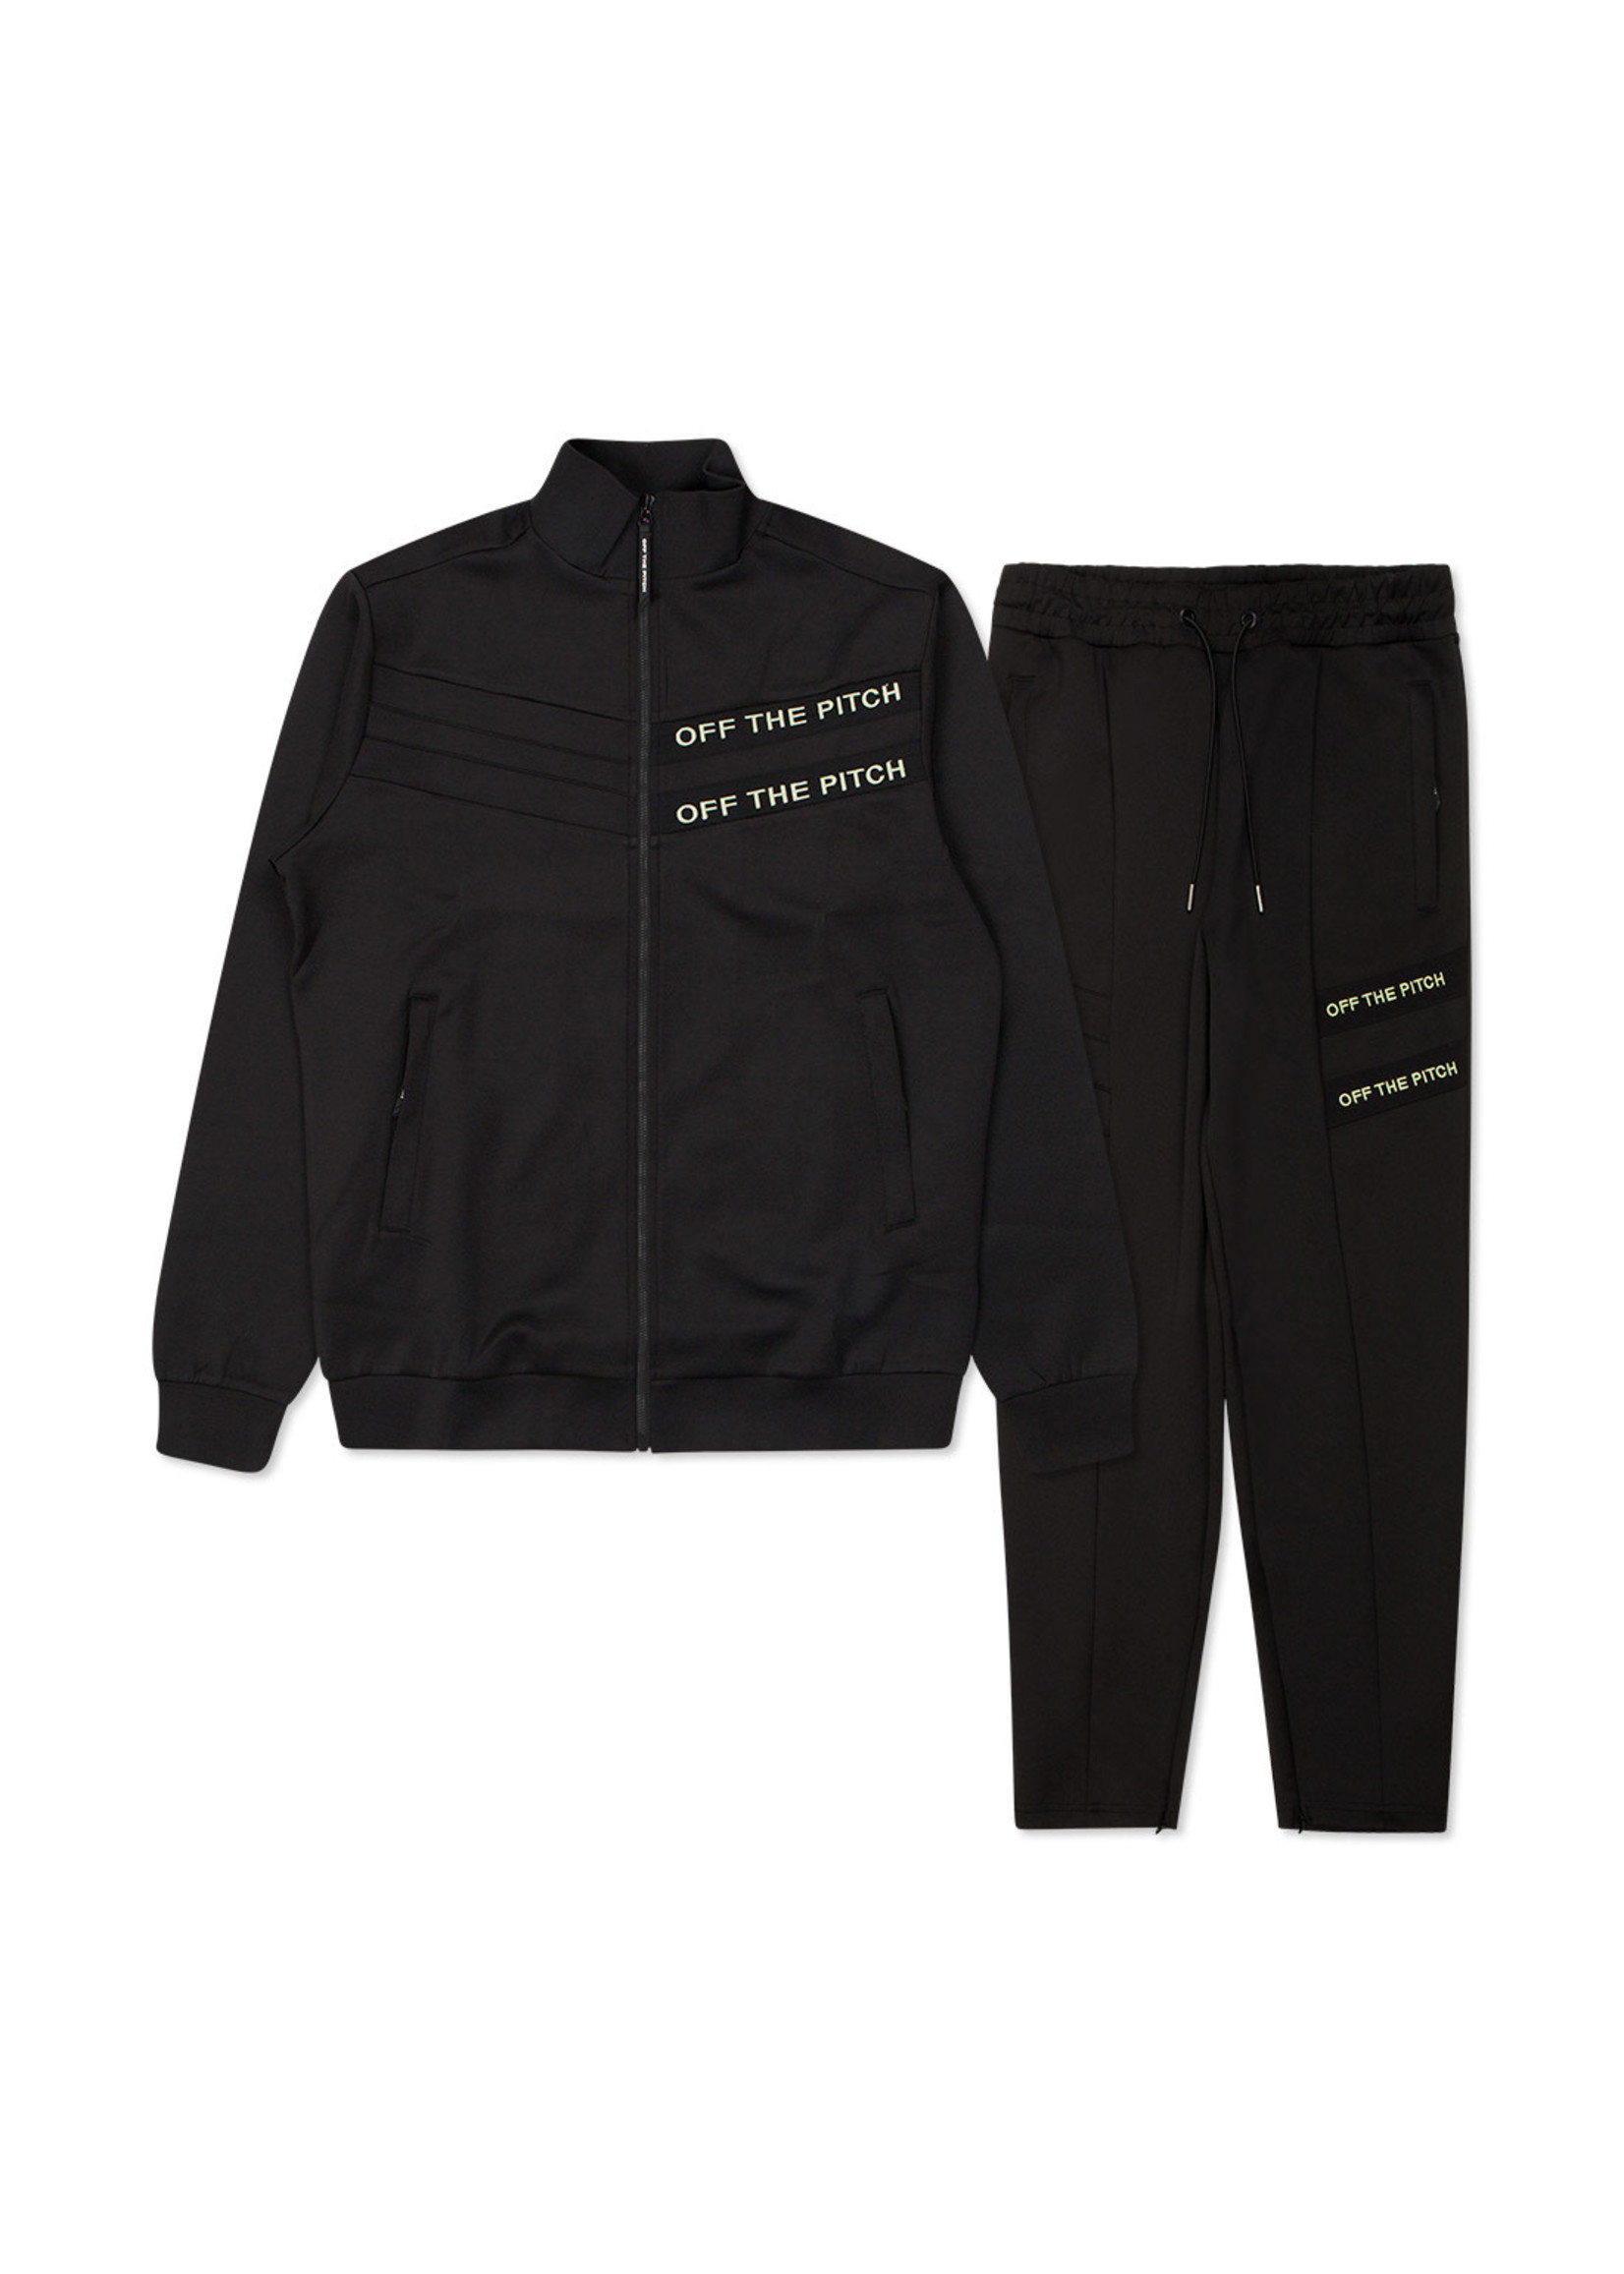 OFF THE PITCH The Mercury Suit - Black